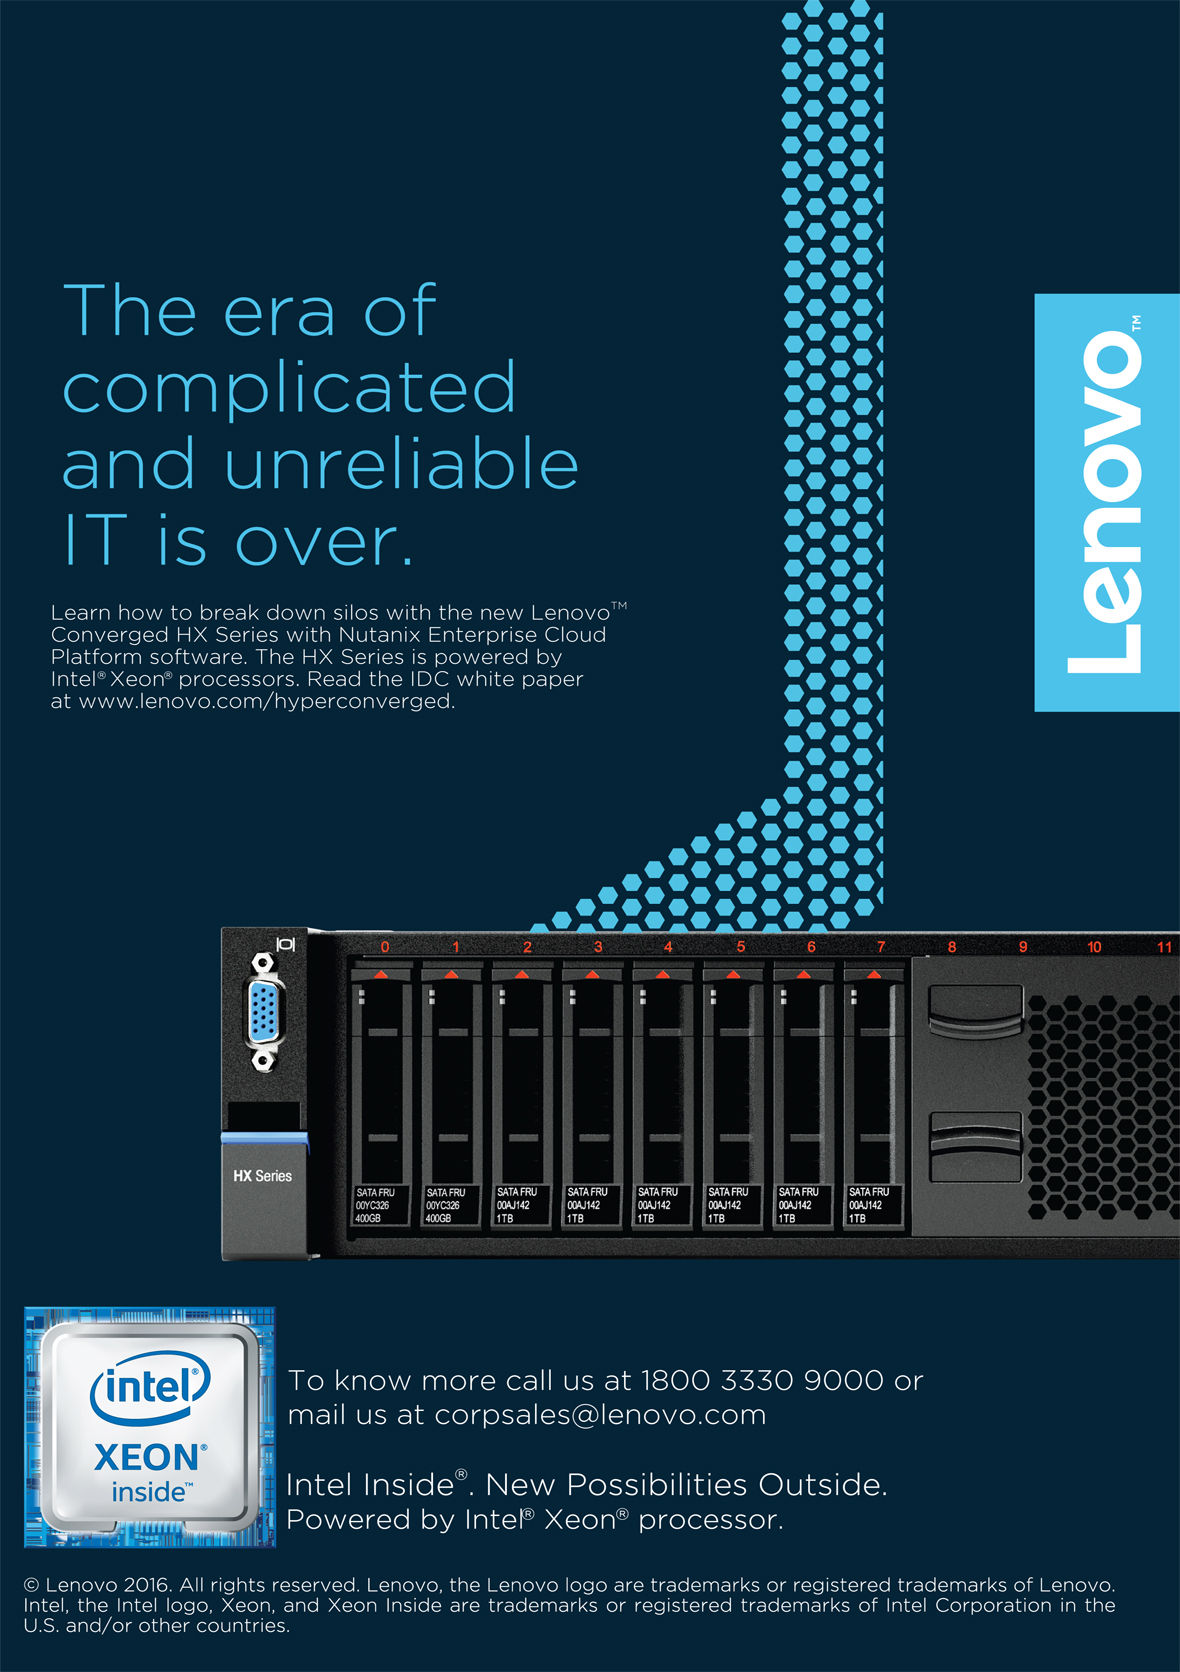 LENOVO- Most Advertisement Brand by My Brand Book